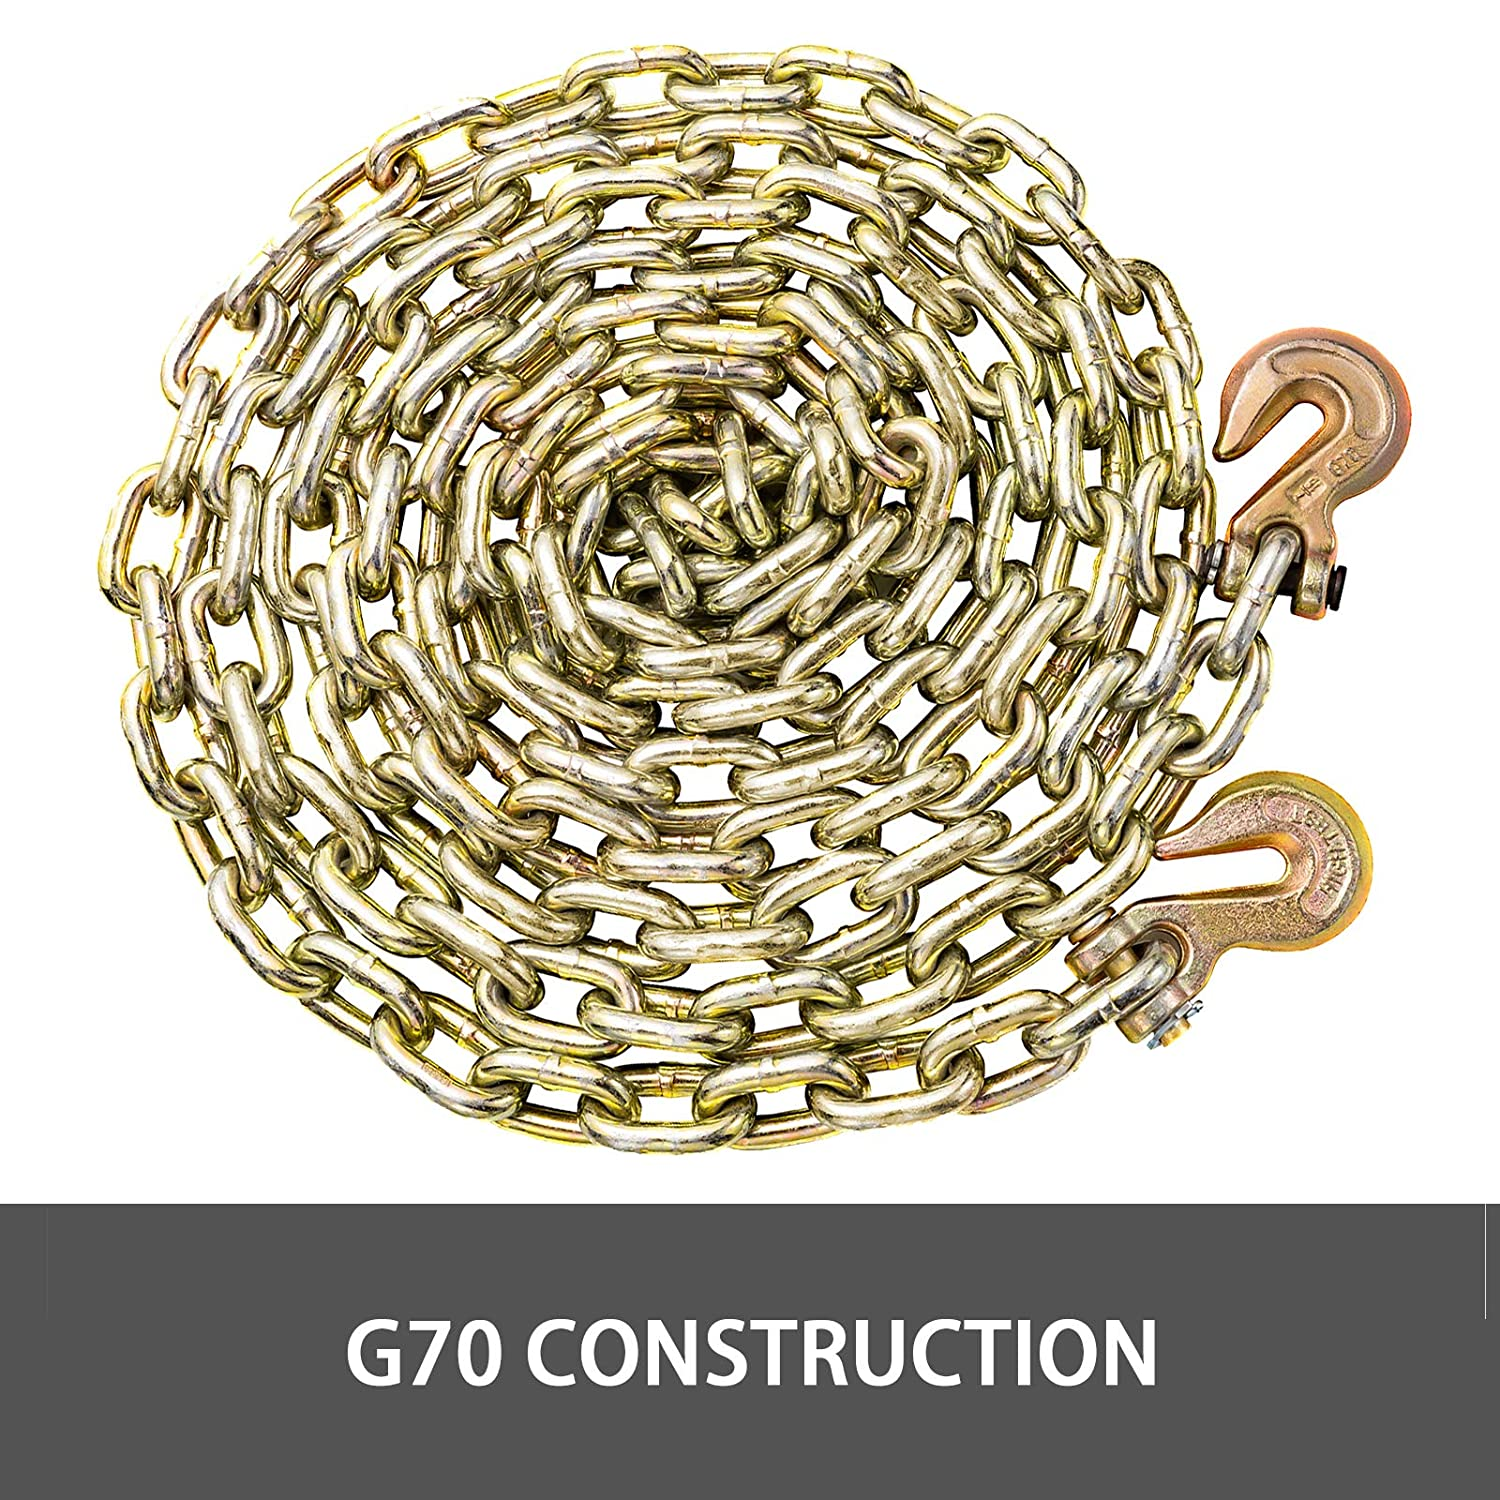 BestEquip 1//2 Inch Grade 70 Chain Heavy Duty by 20.6 FT Length Towing Chain Oil Chain Zinc Plated W//Safety Grab Hooks